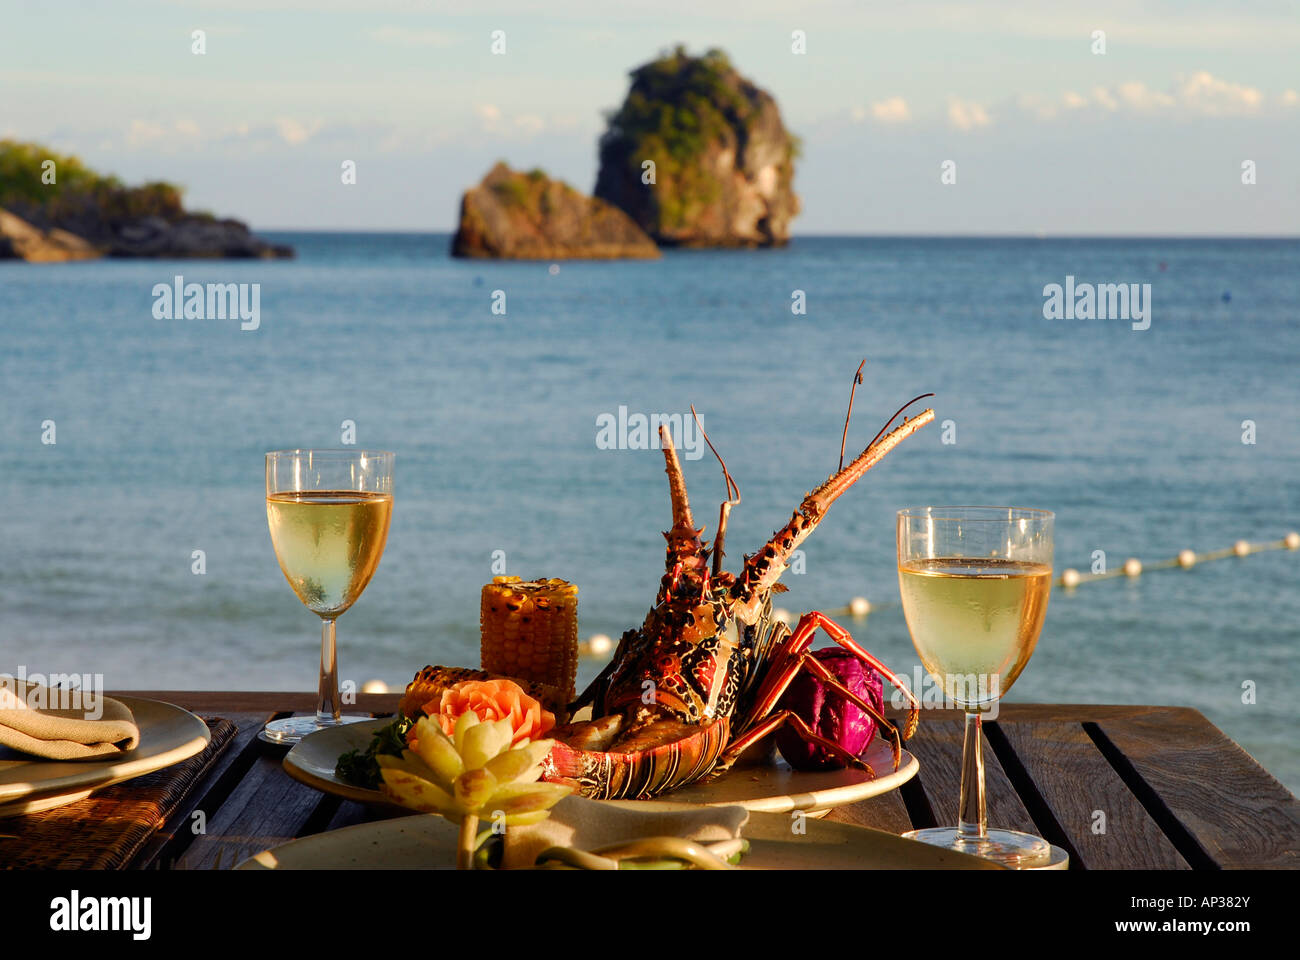 Spiny Lobster dish at Beach Restaurant The Grotto with sea view Stock Photo: 15660770 - Alamy